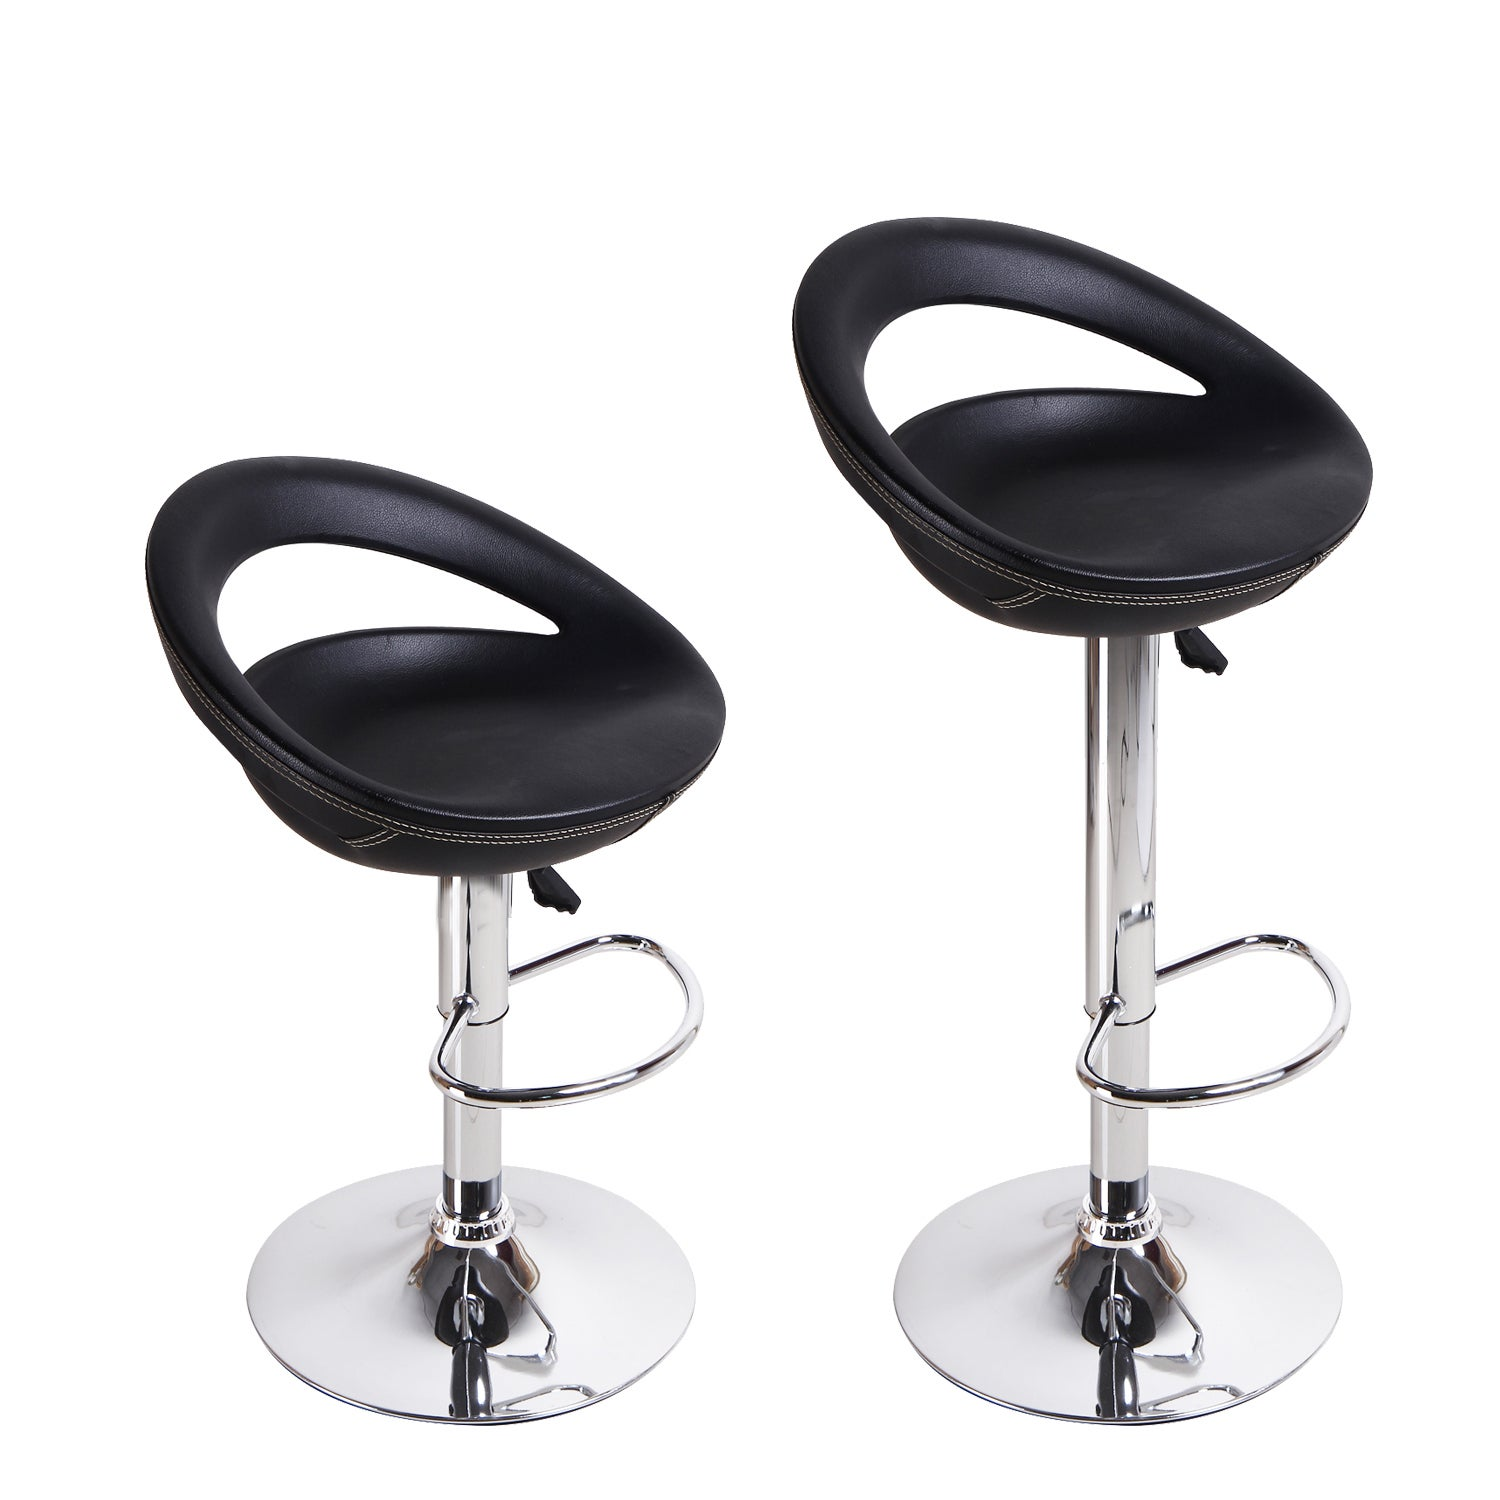 Shop Adeco Black Round Hydraulic Lift Adjustable Barstool Chairs (Set Of 2)    Free Shipping Today   Overstock.com   8939239